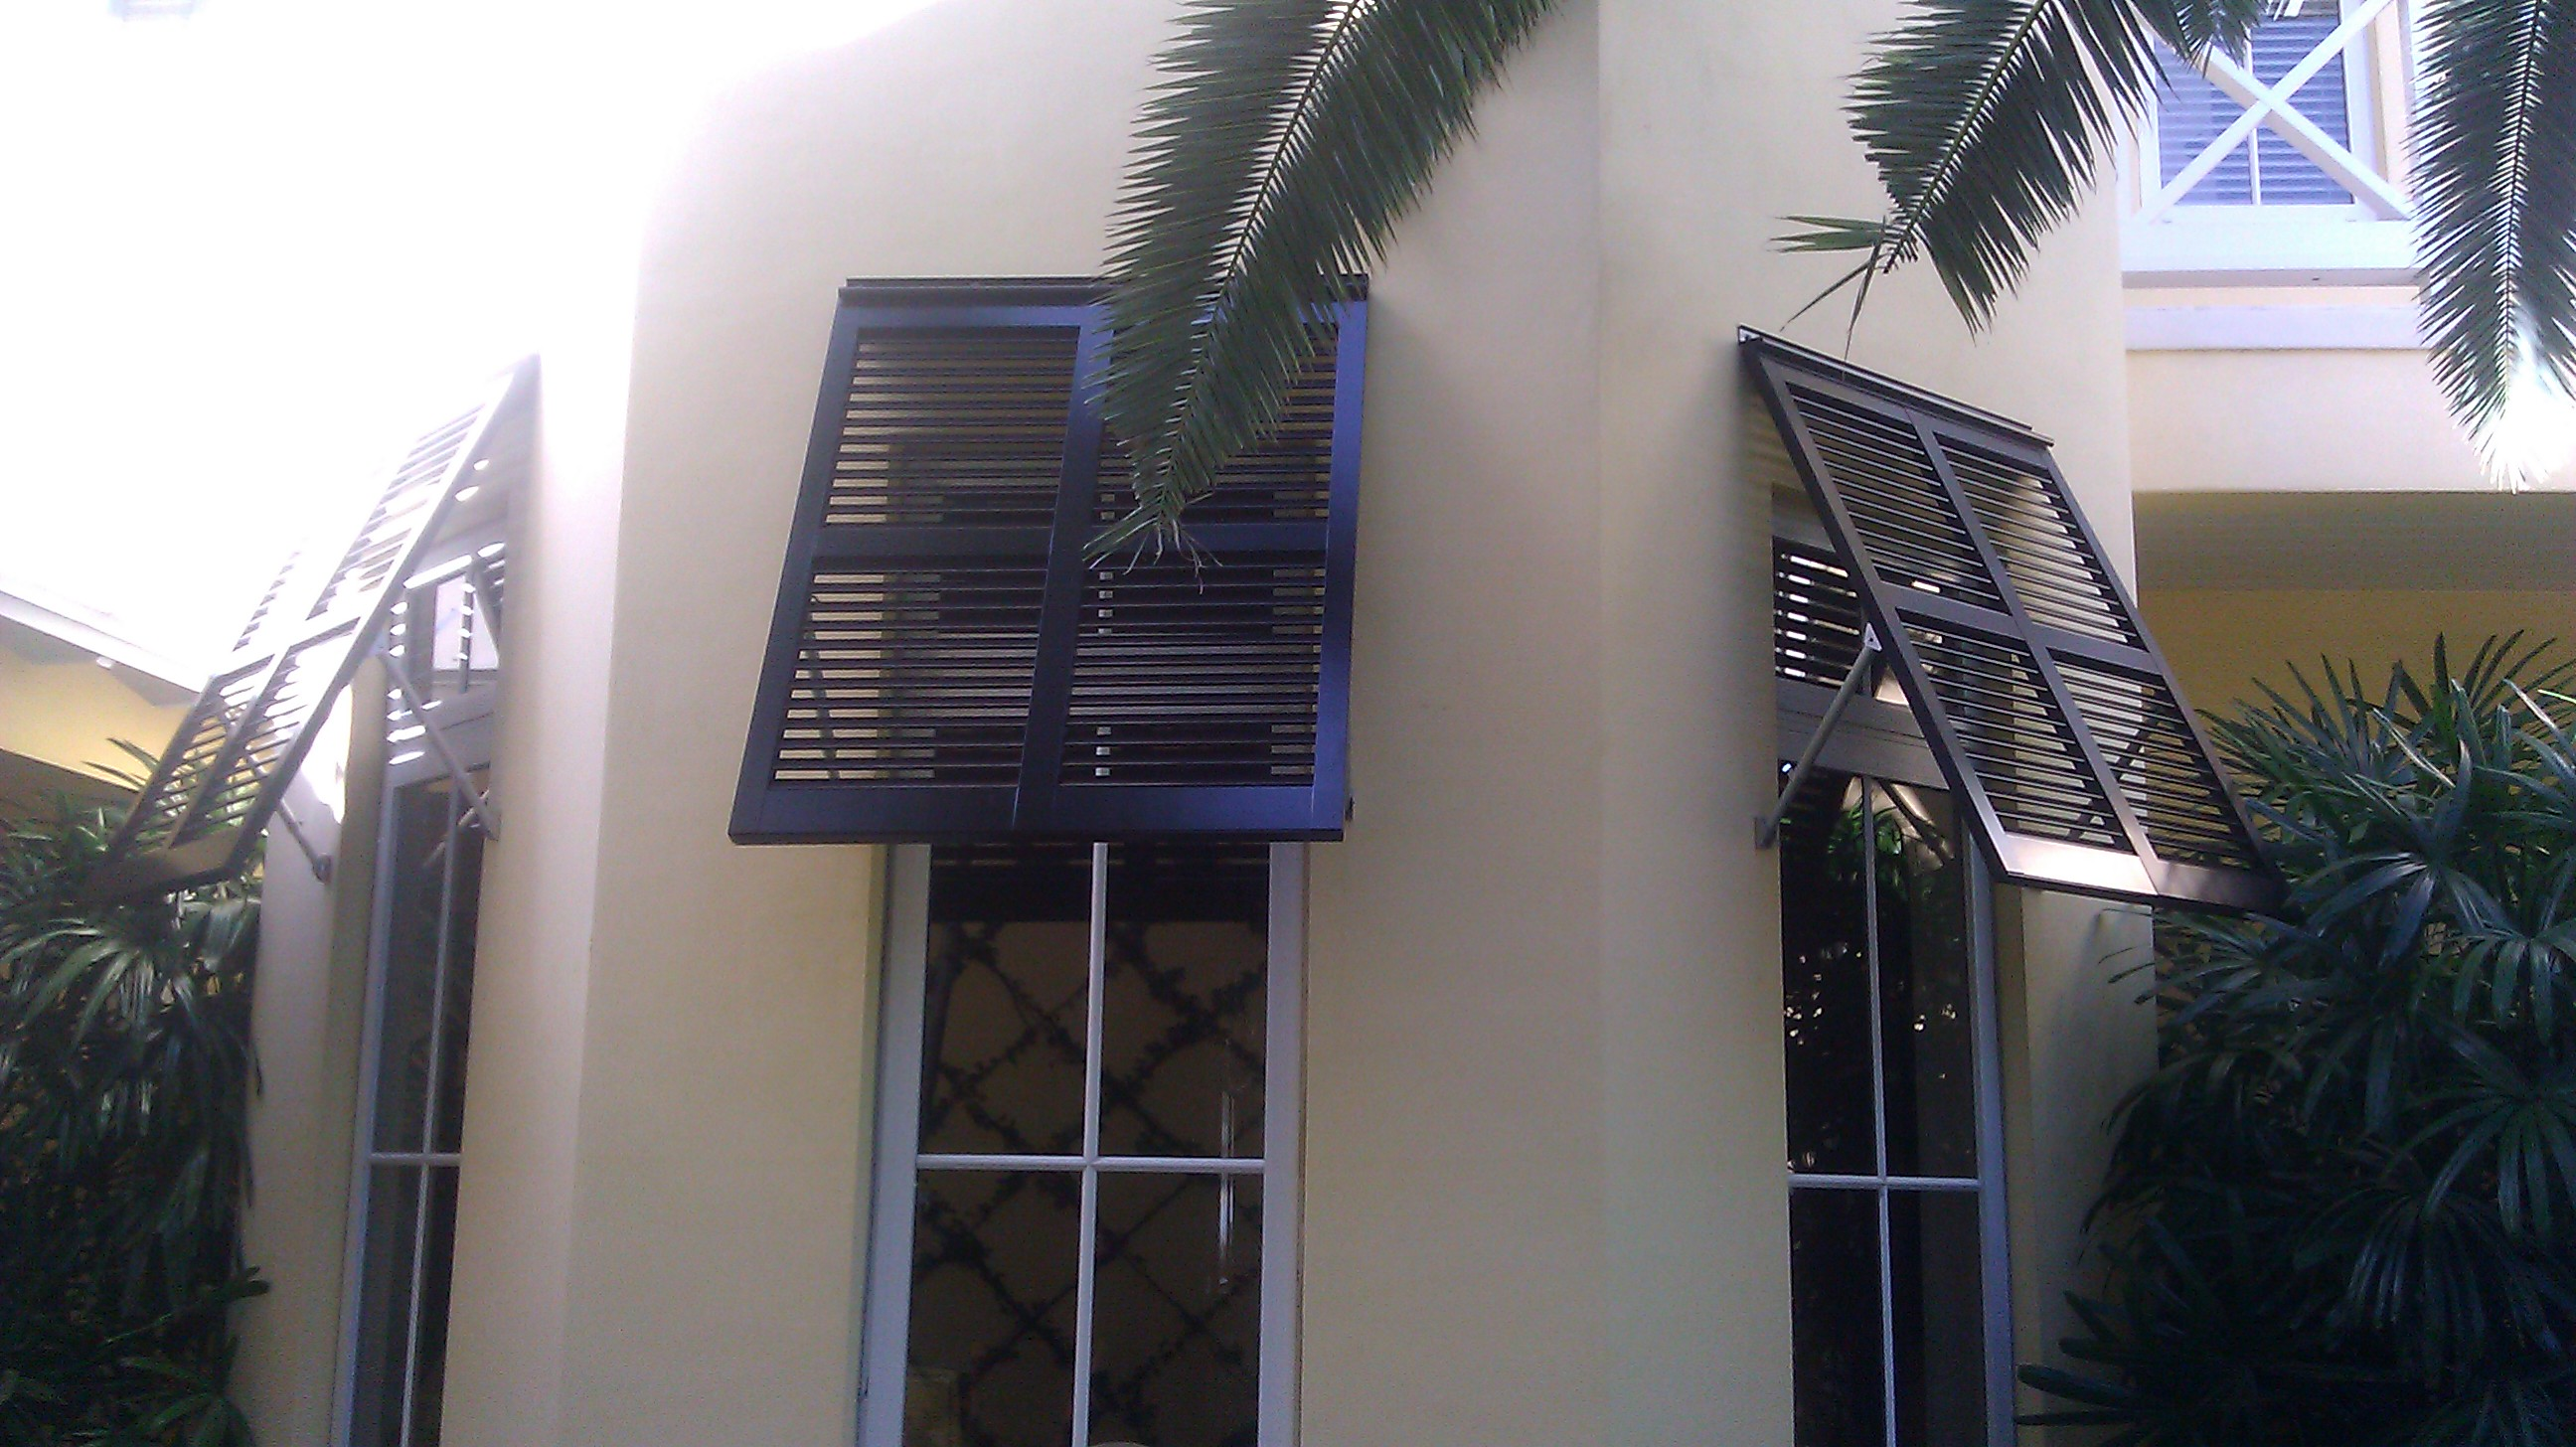 Bahama shutters are aestetically appealing